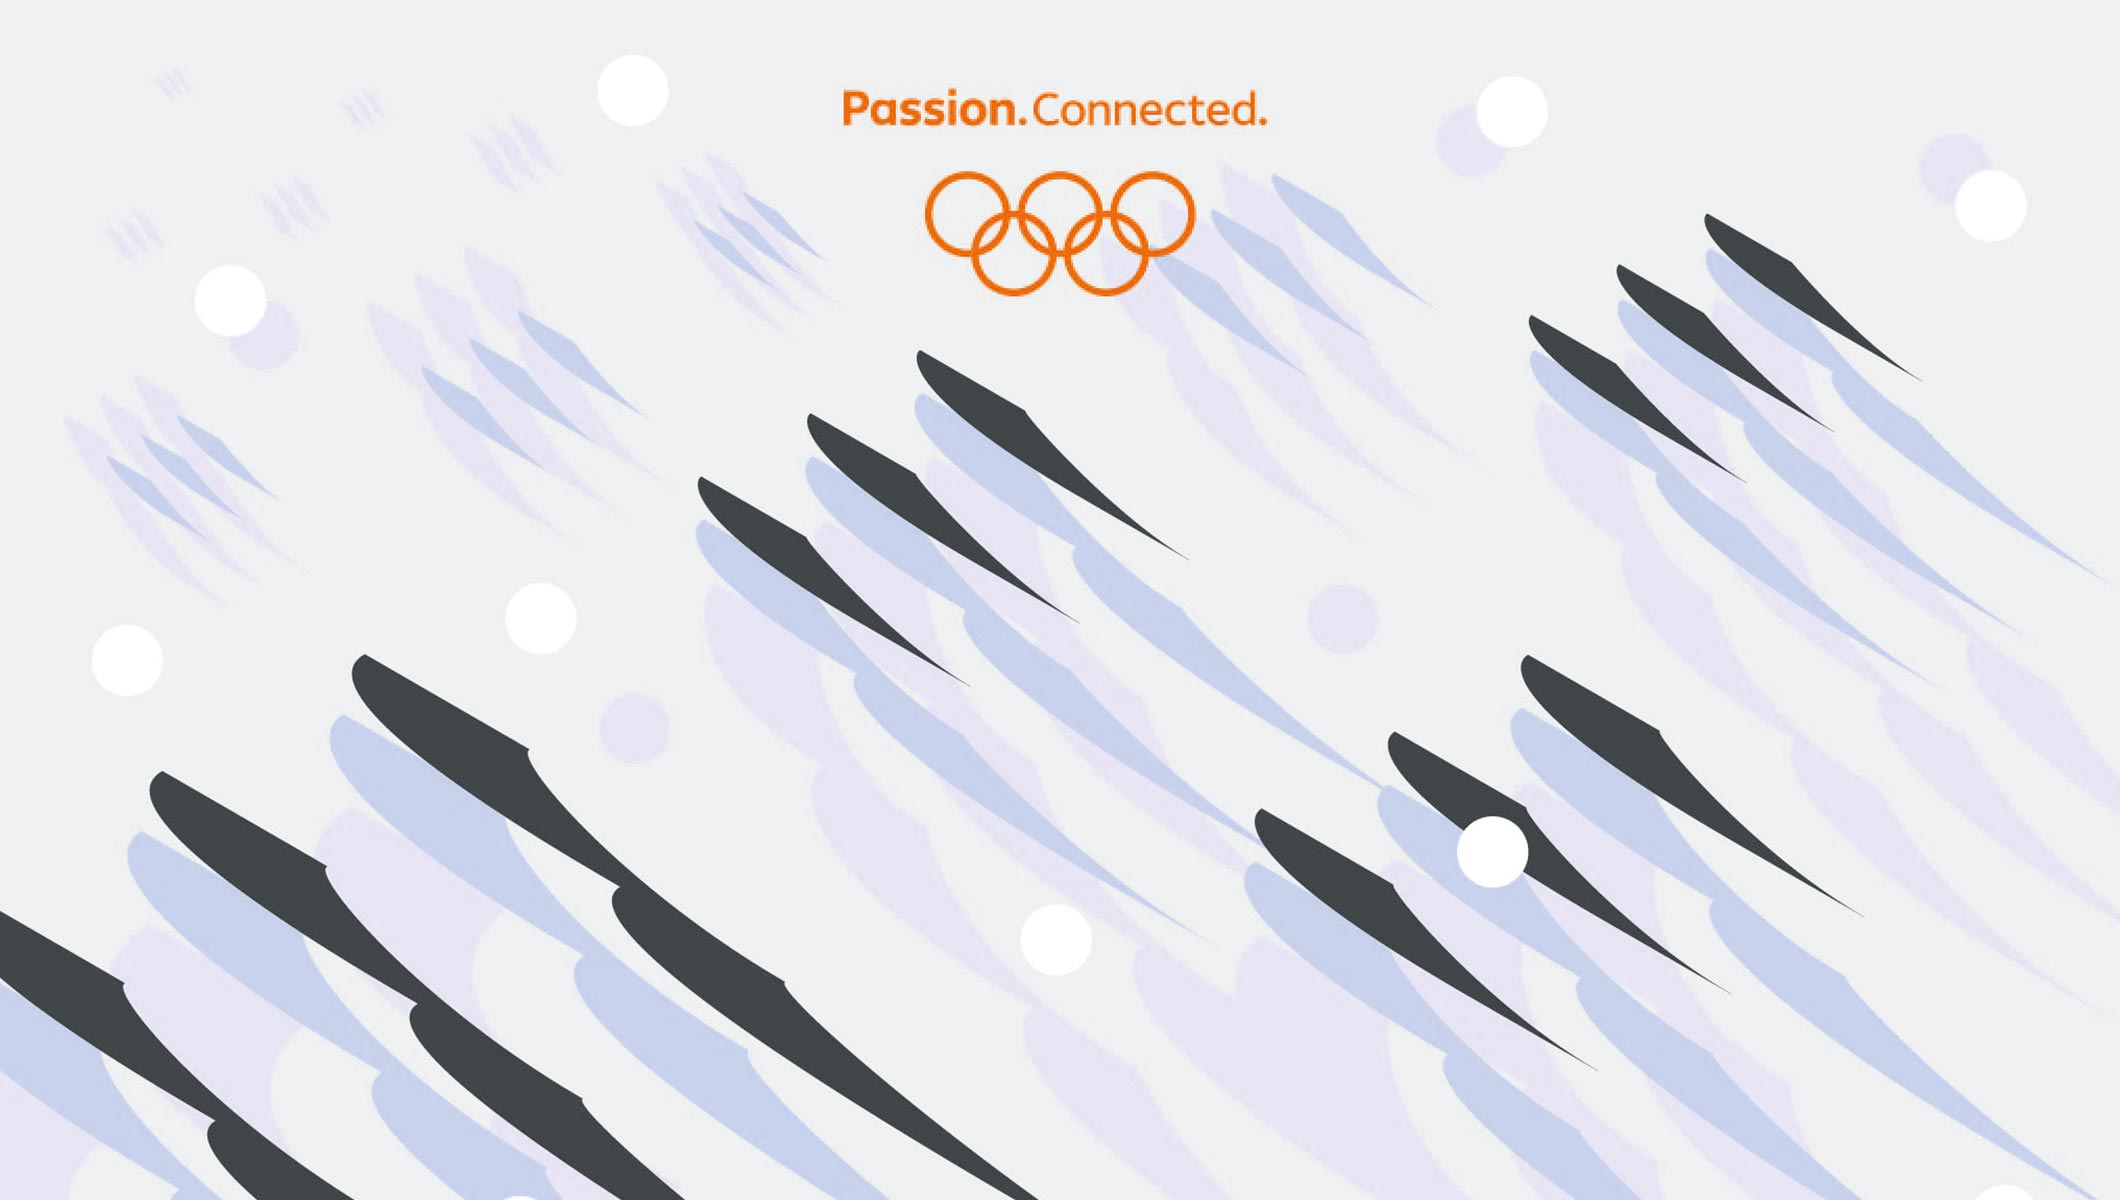 Ring Ceremony Hd Wallpaper The Art Posters For Pyeongchang 2018 Olympic News